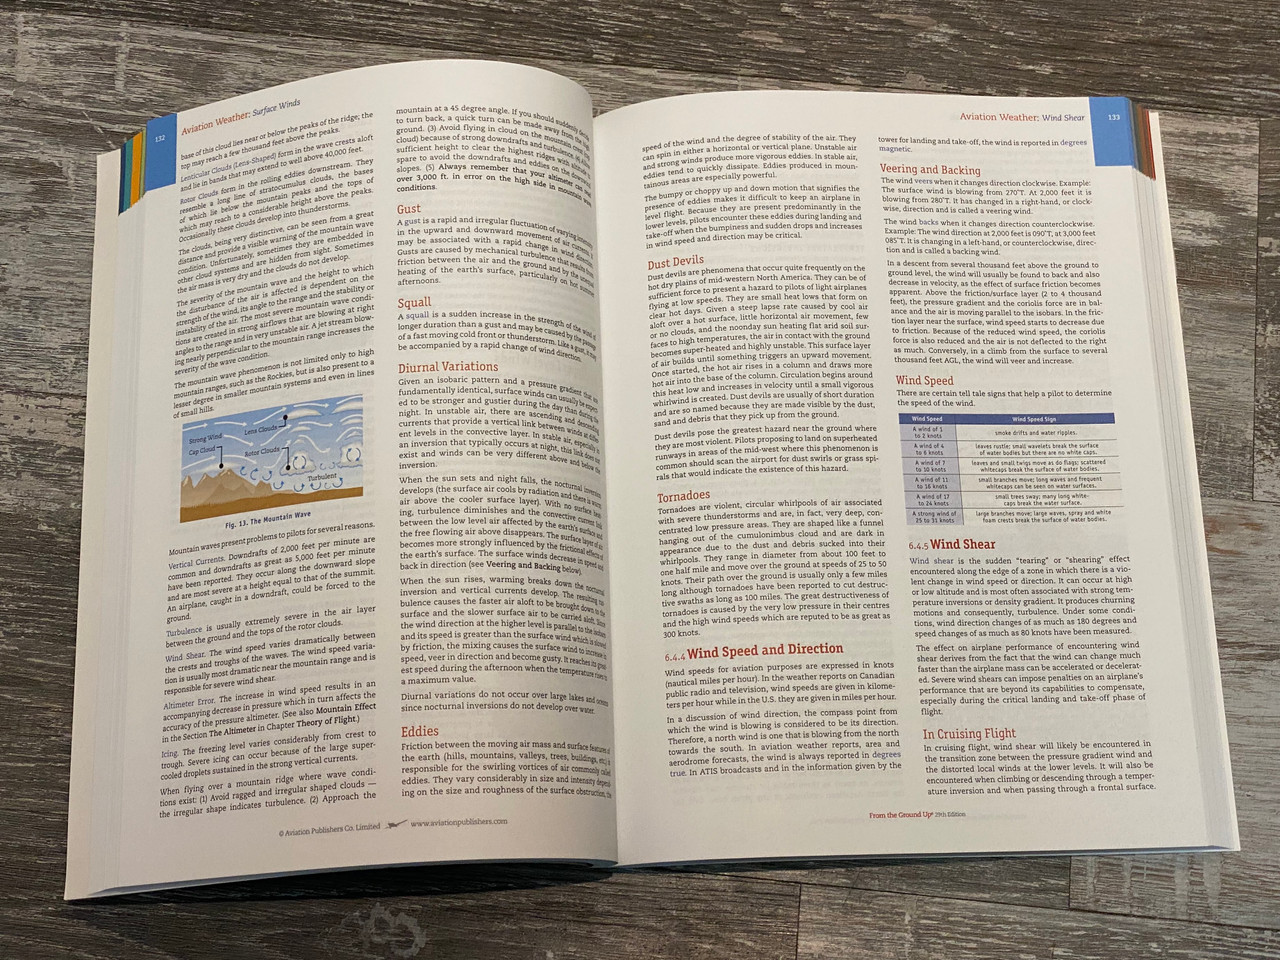 Sample Page: Aviation Weather